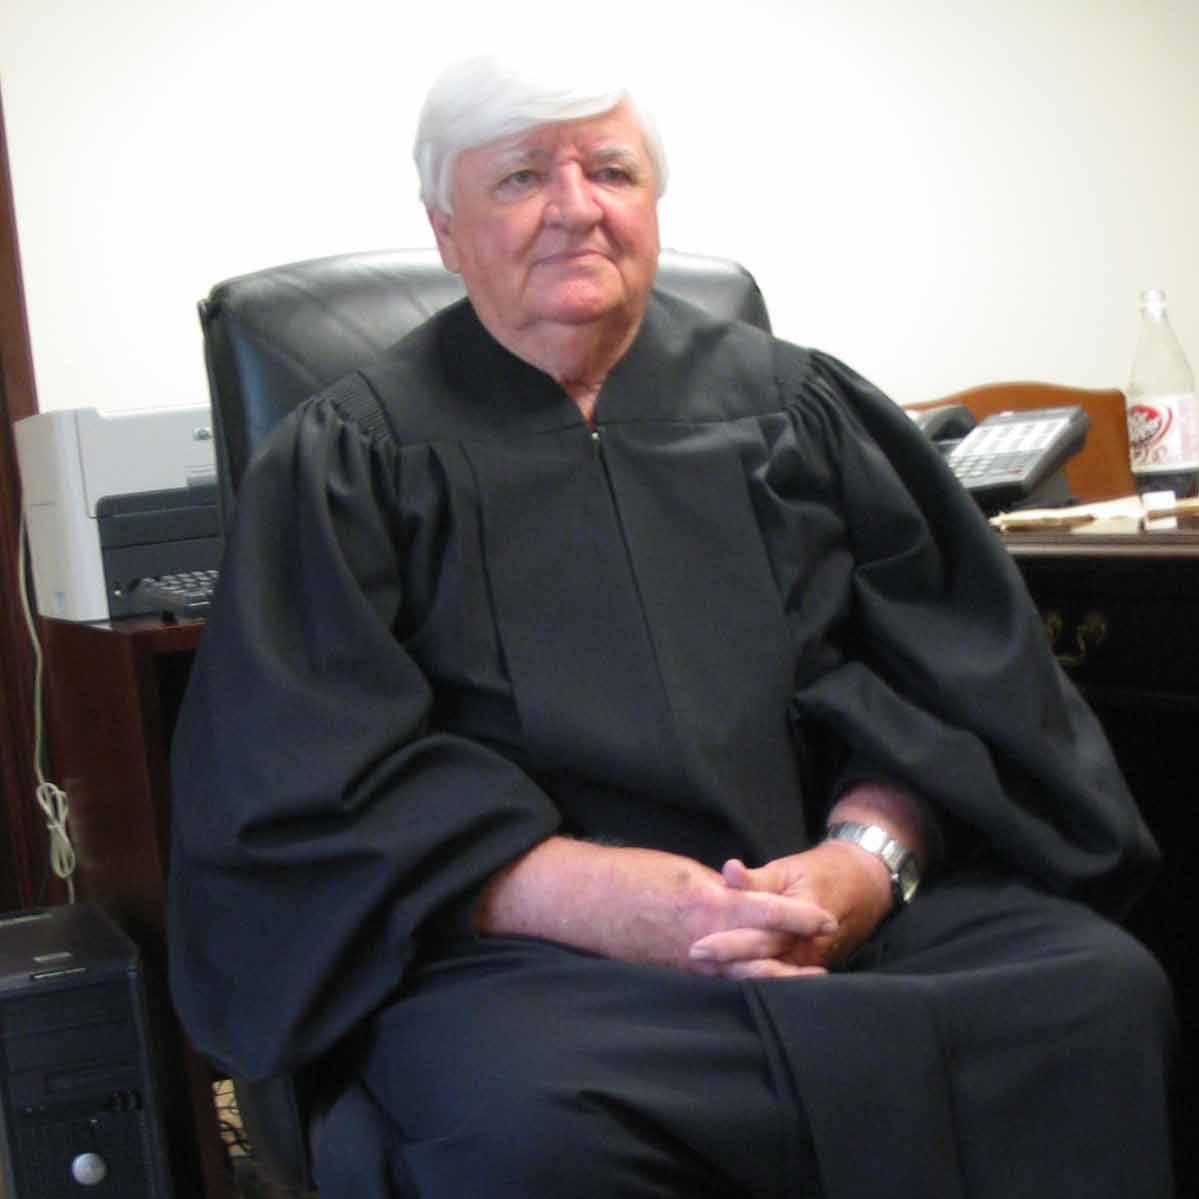 Retired Circuit Judge Henry Lackey, who exposed state judicial bribery scheme, has died